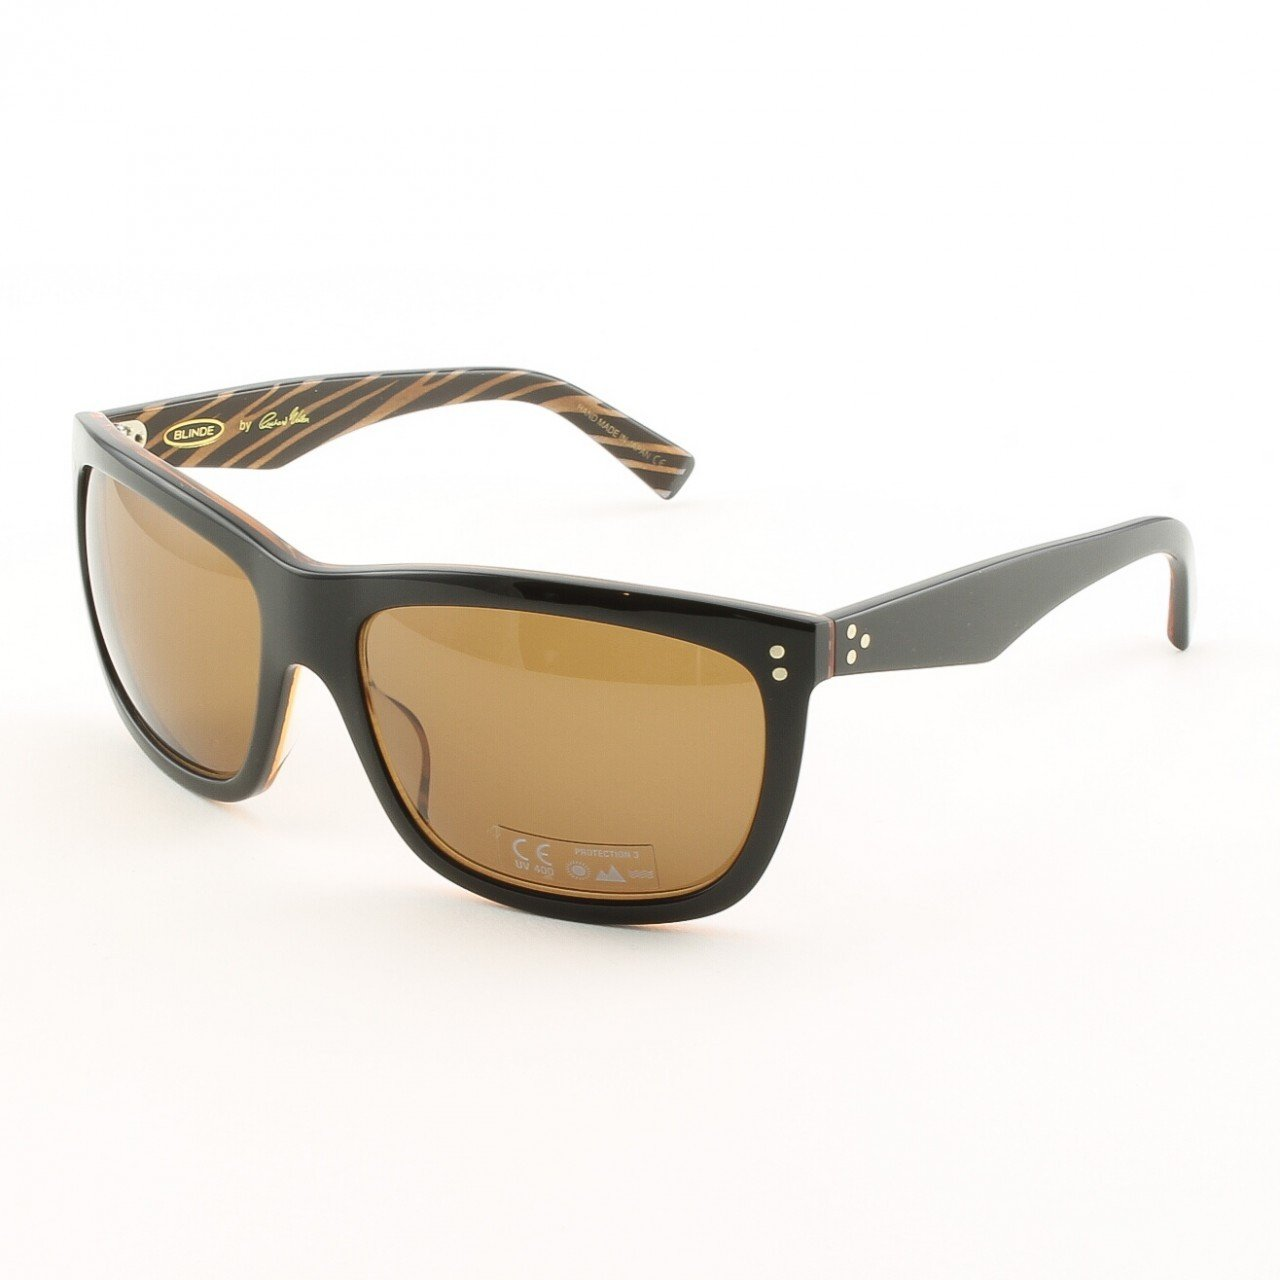 Blinde I'll Make It Up 2 U Unisex Sunglasses Col. Brown Zebra with Brown Lenses